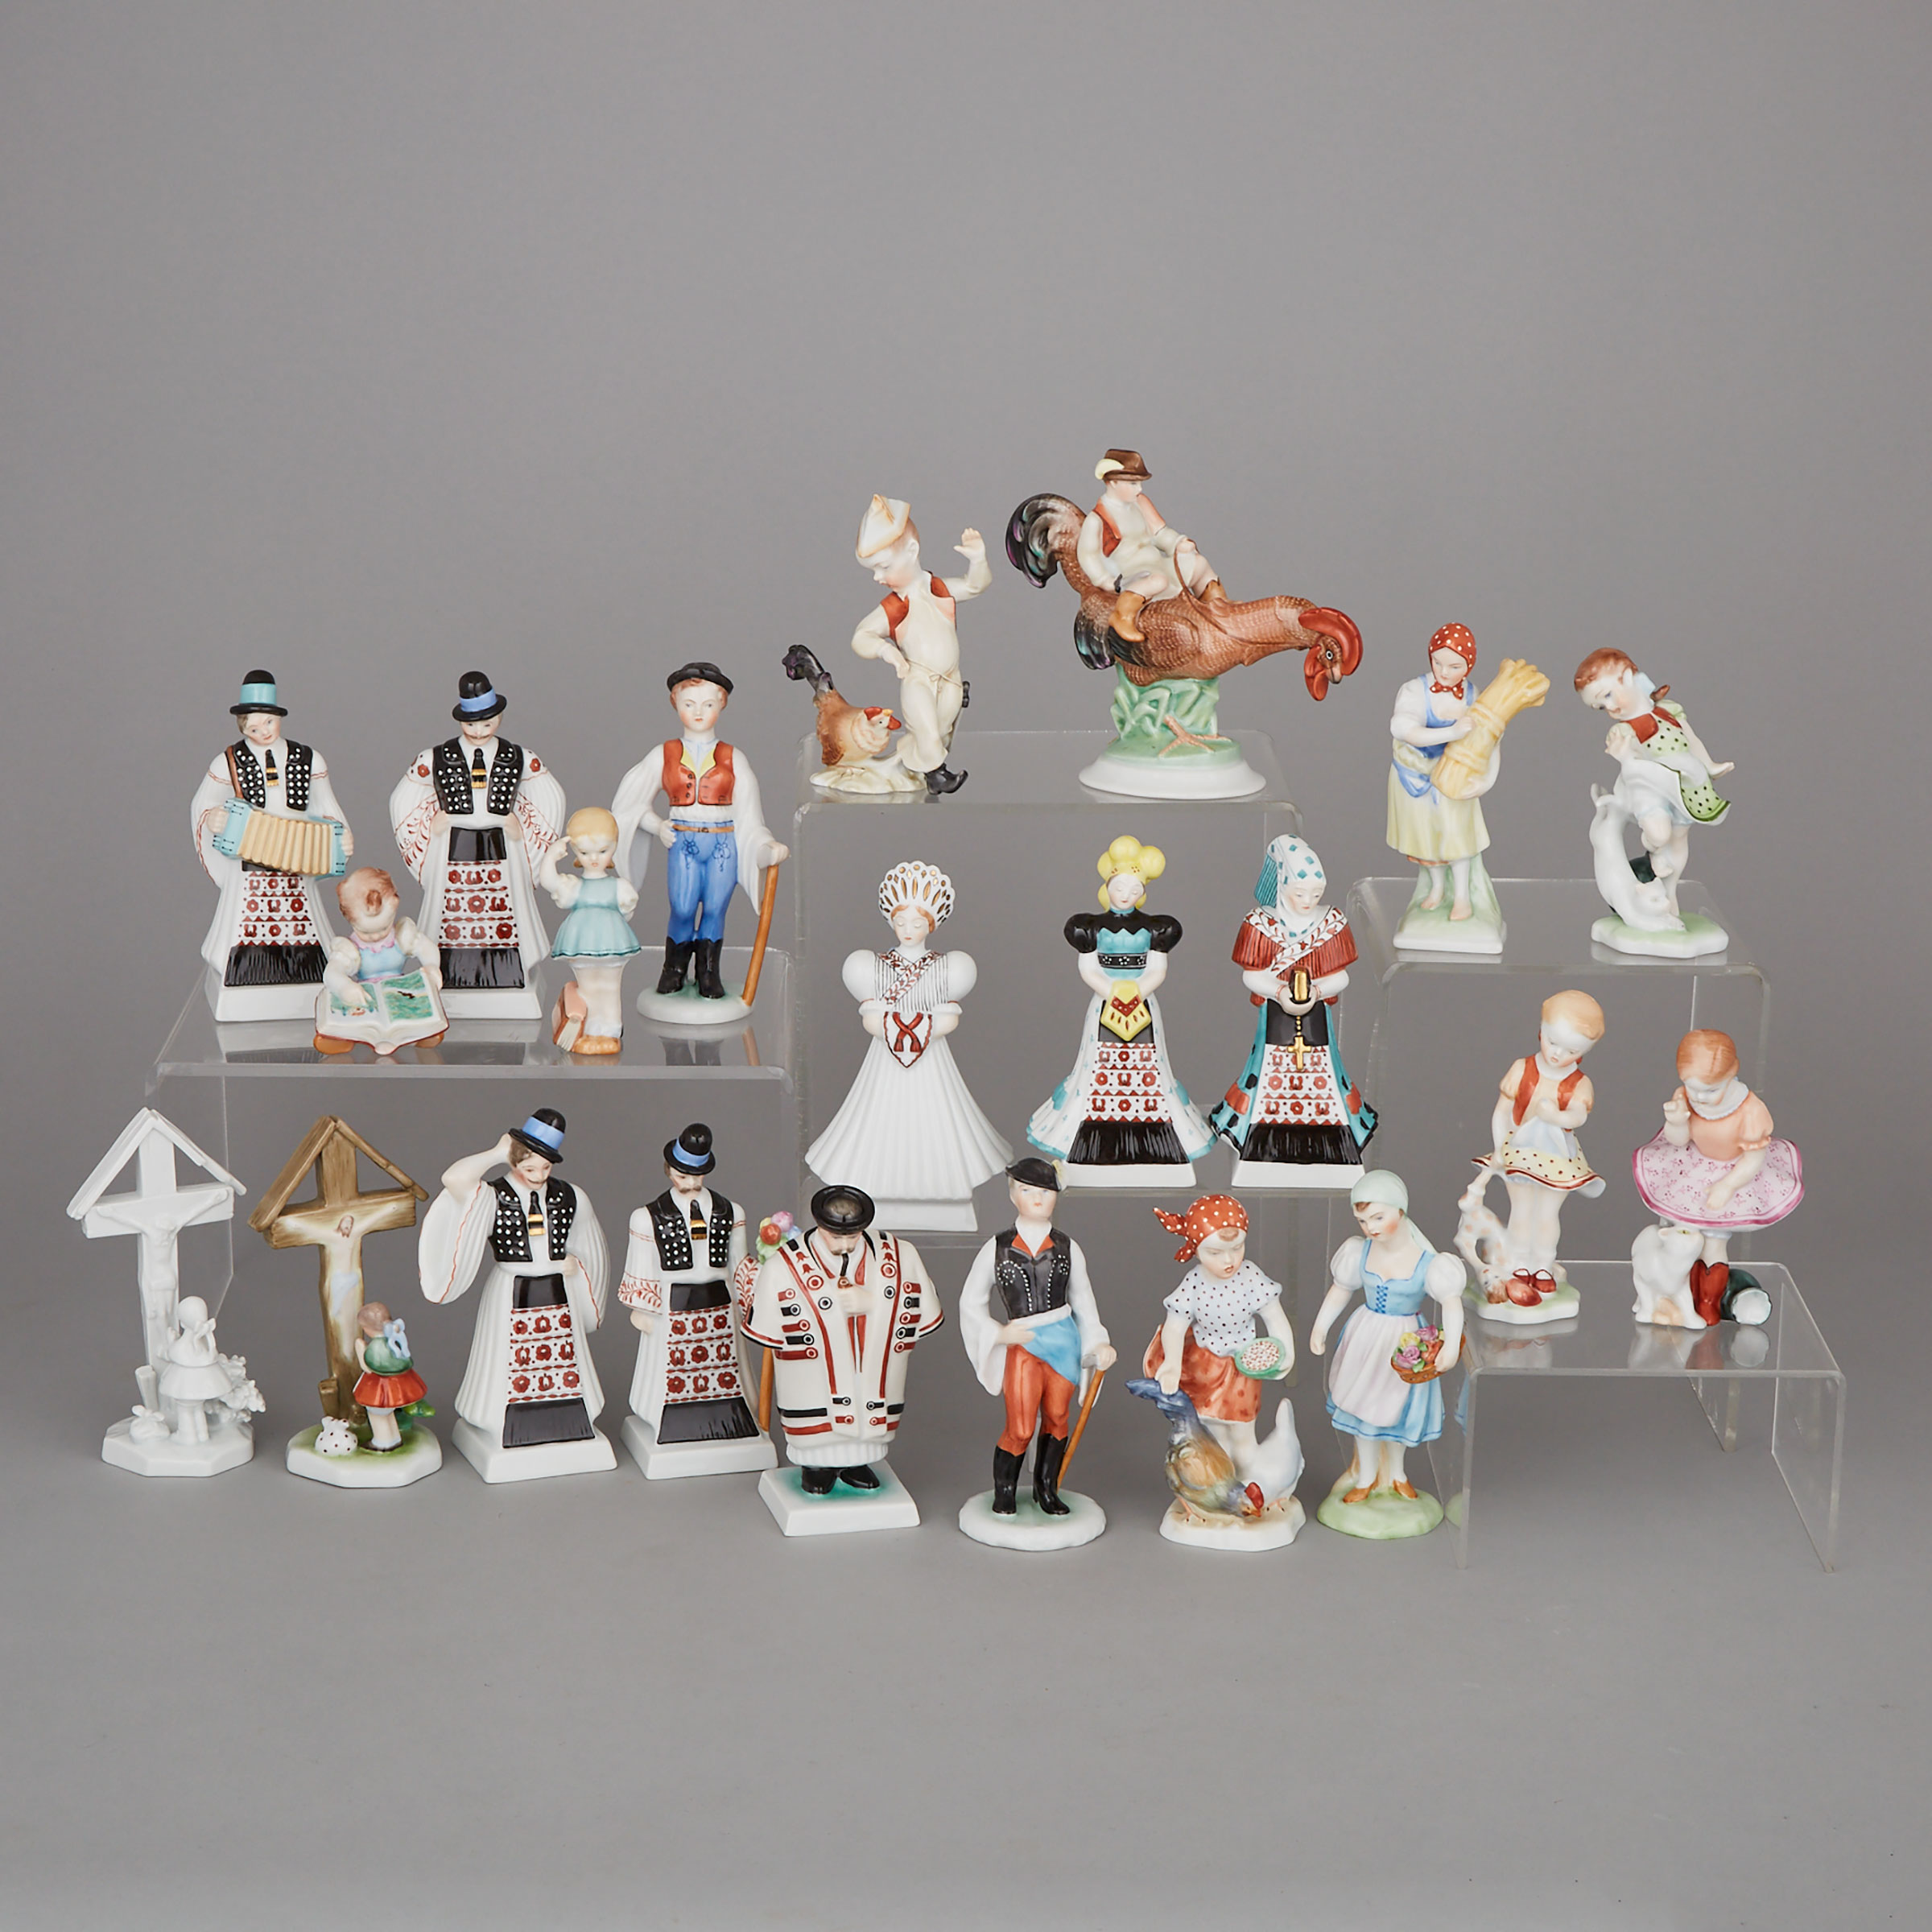 Twenty-two Herend Figures, 20th century